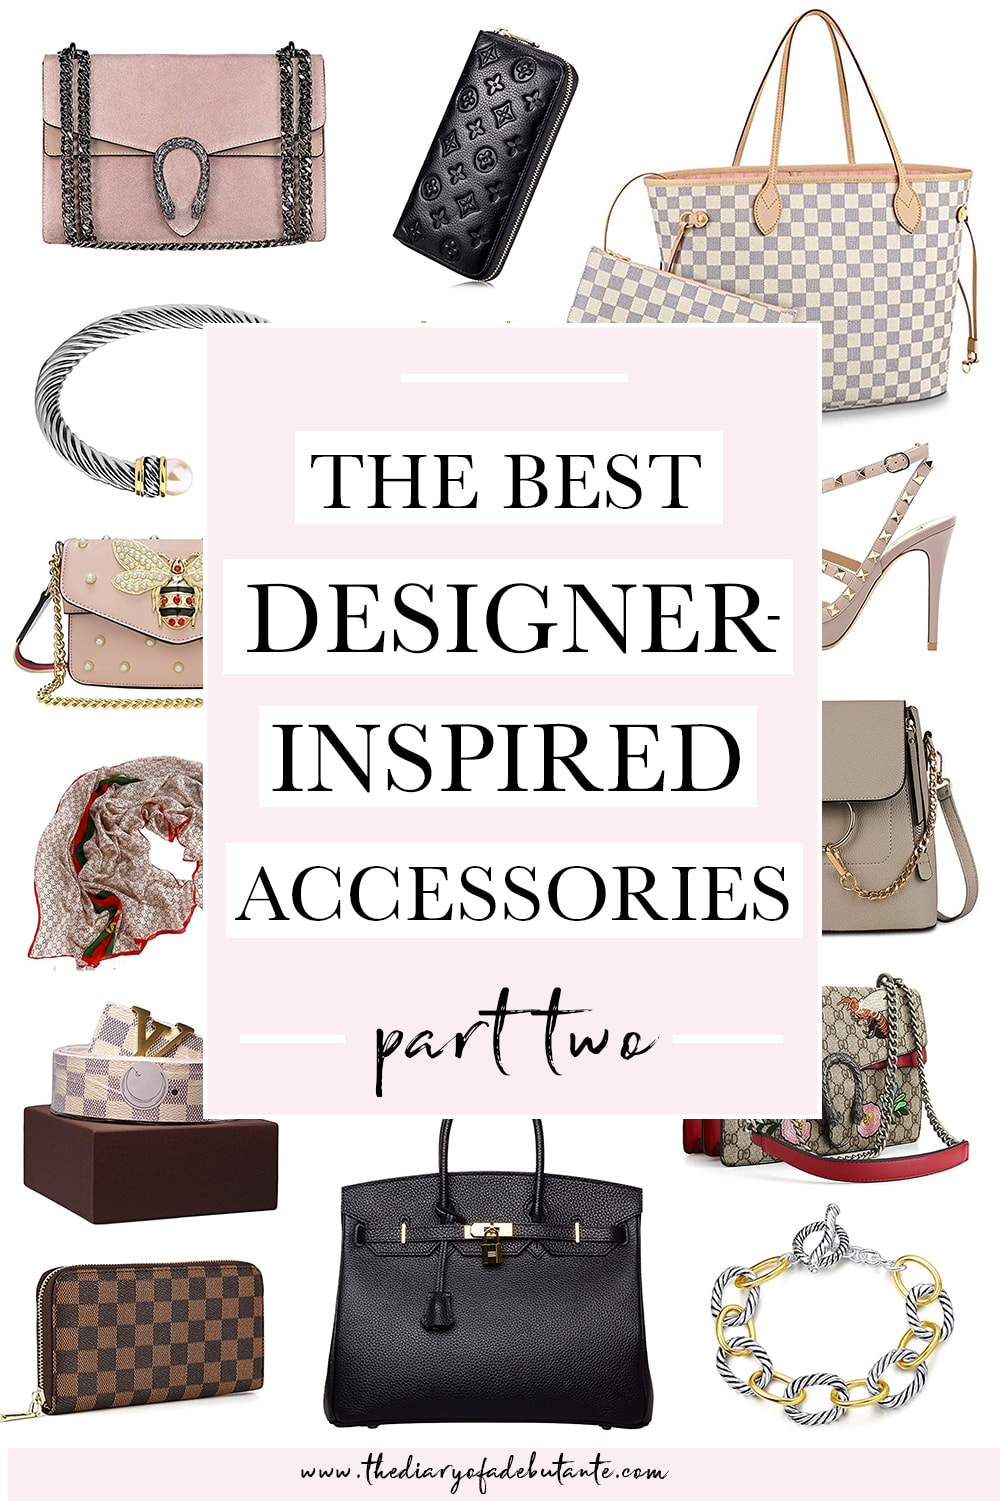 Part two of the best designer look alikes (including designer-inspired bags, jewelry, and shoes) by affordable fashion blogger Stephanie Ziajka on Diary of a Debutante